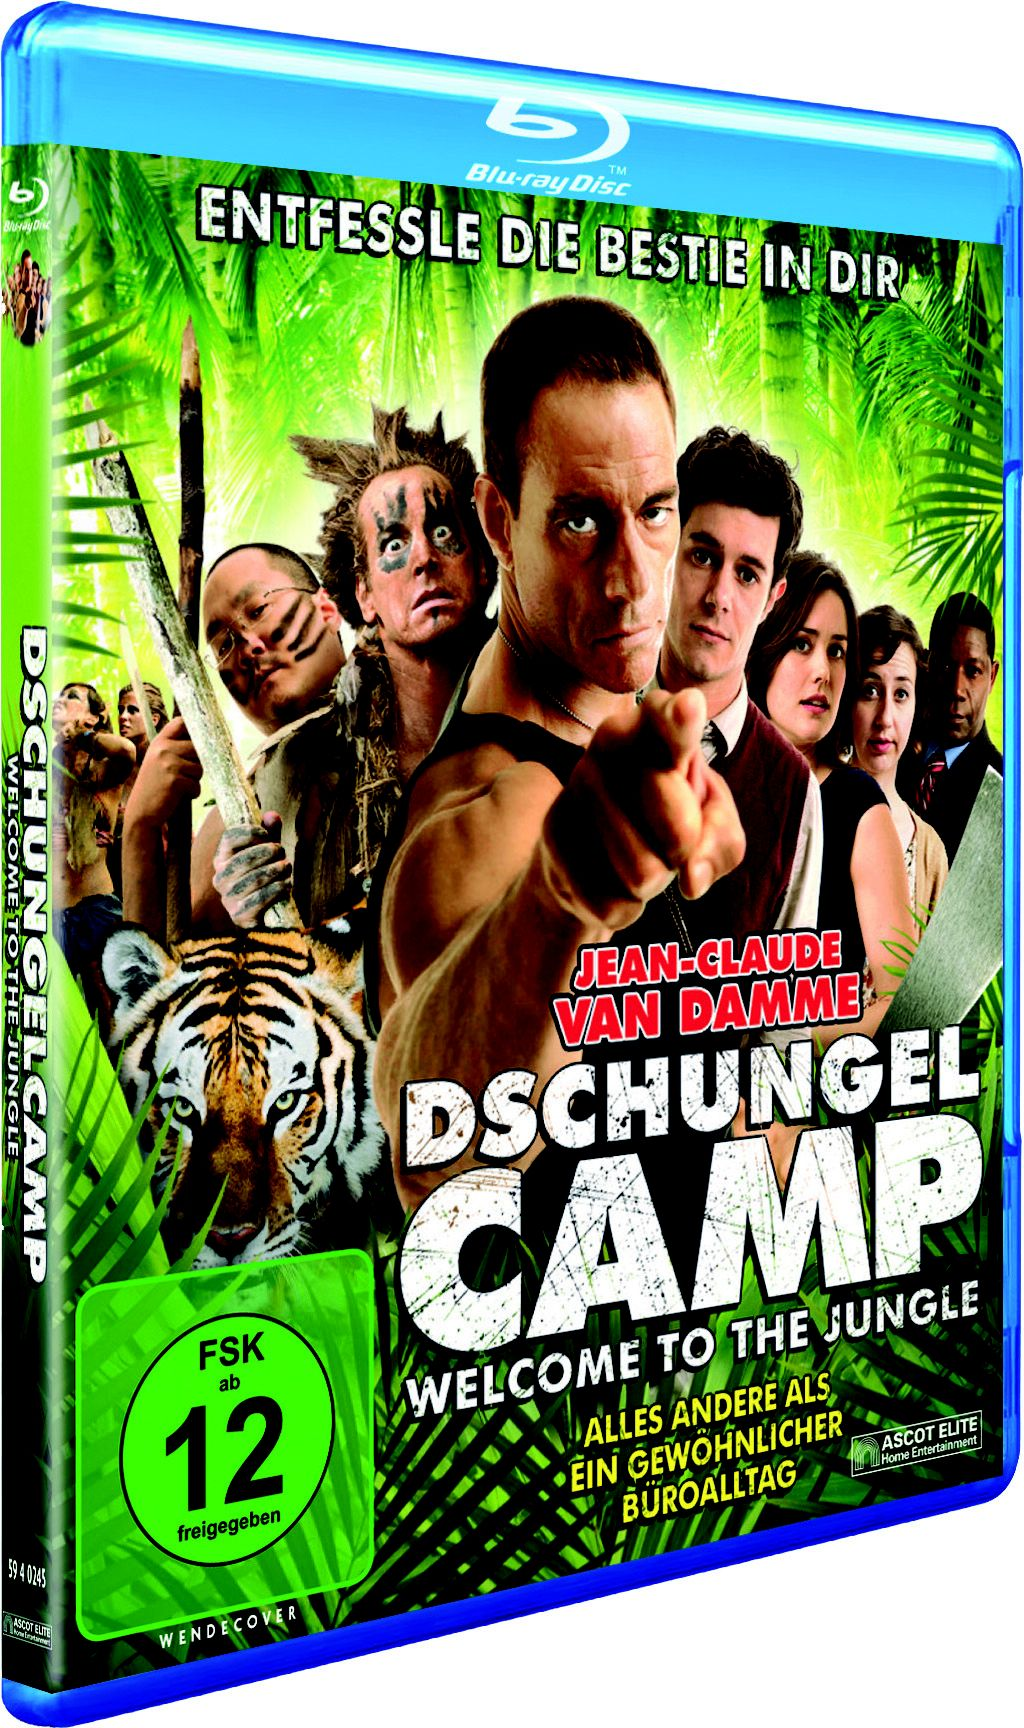 Dschungelcamp Welcome To The Jungle